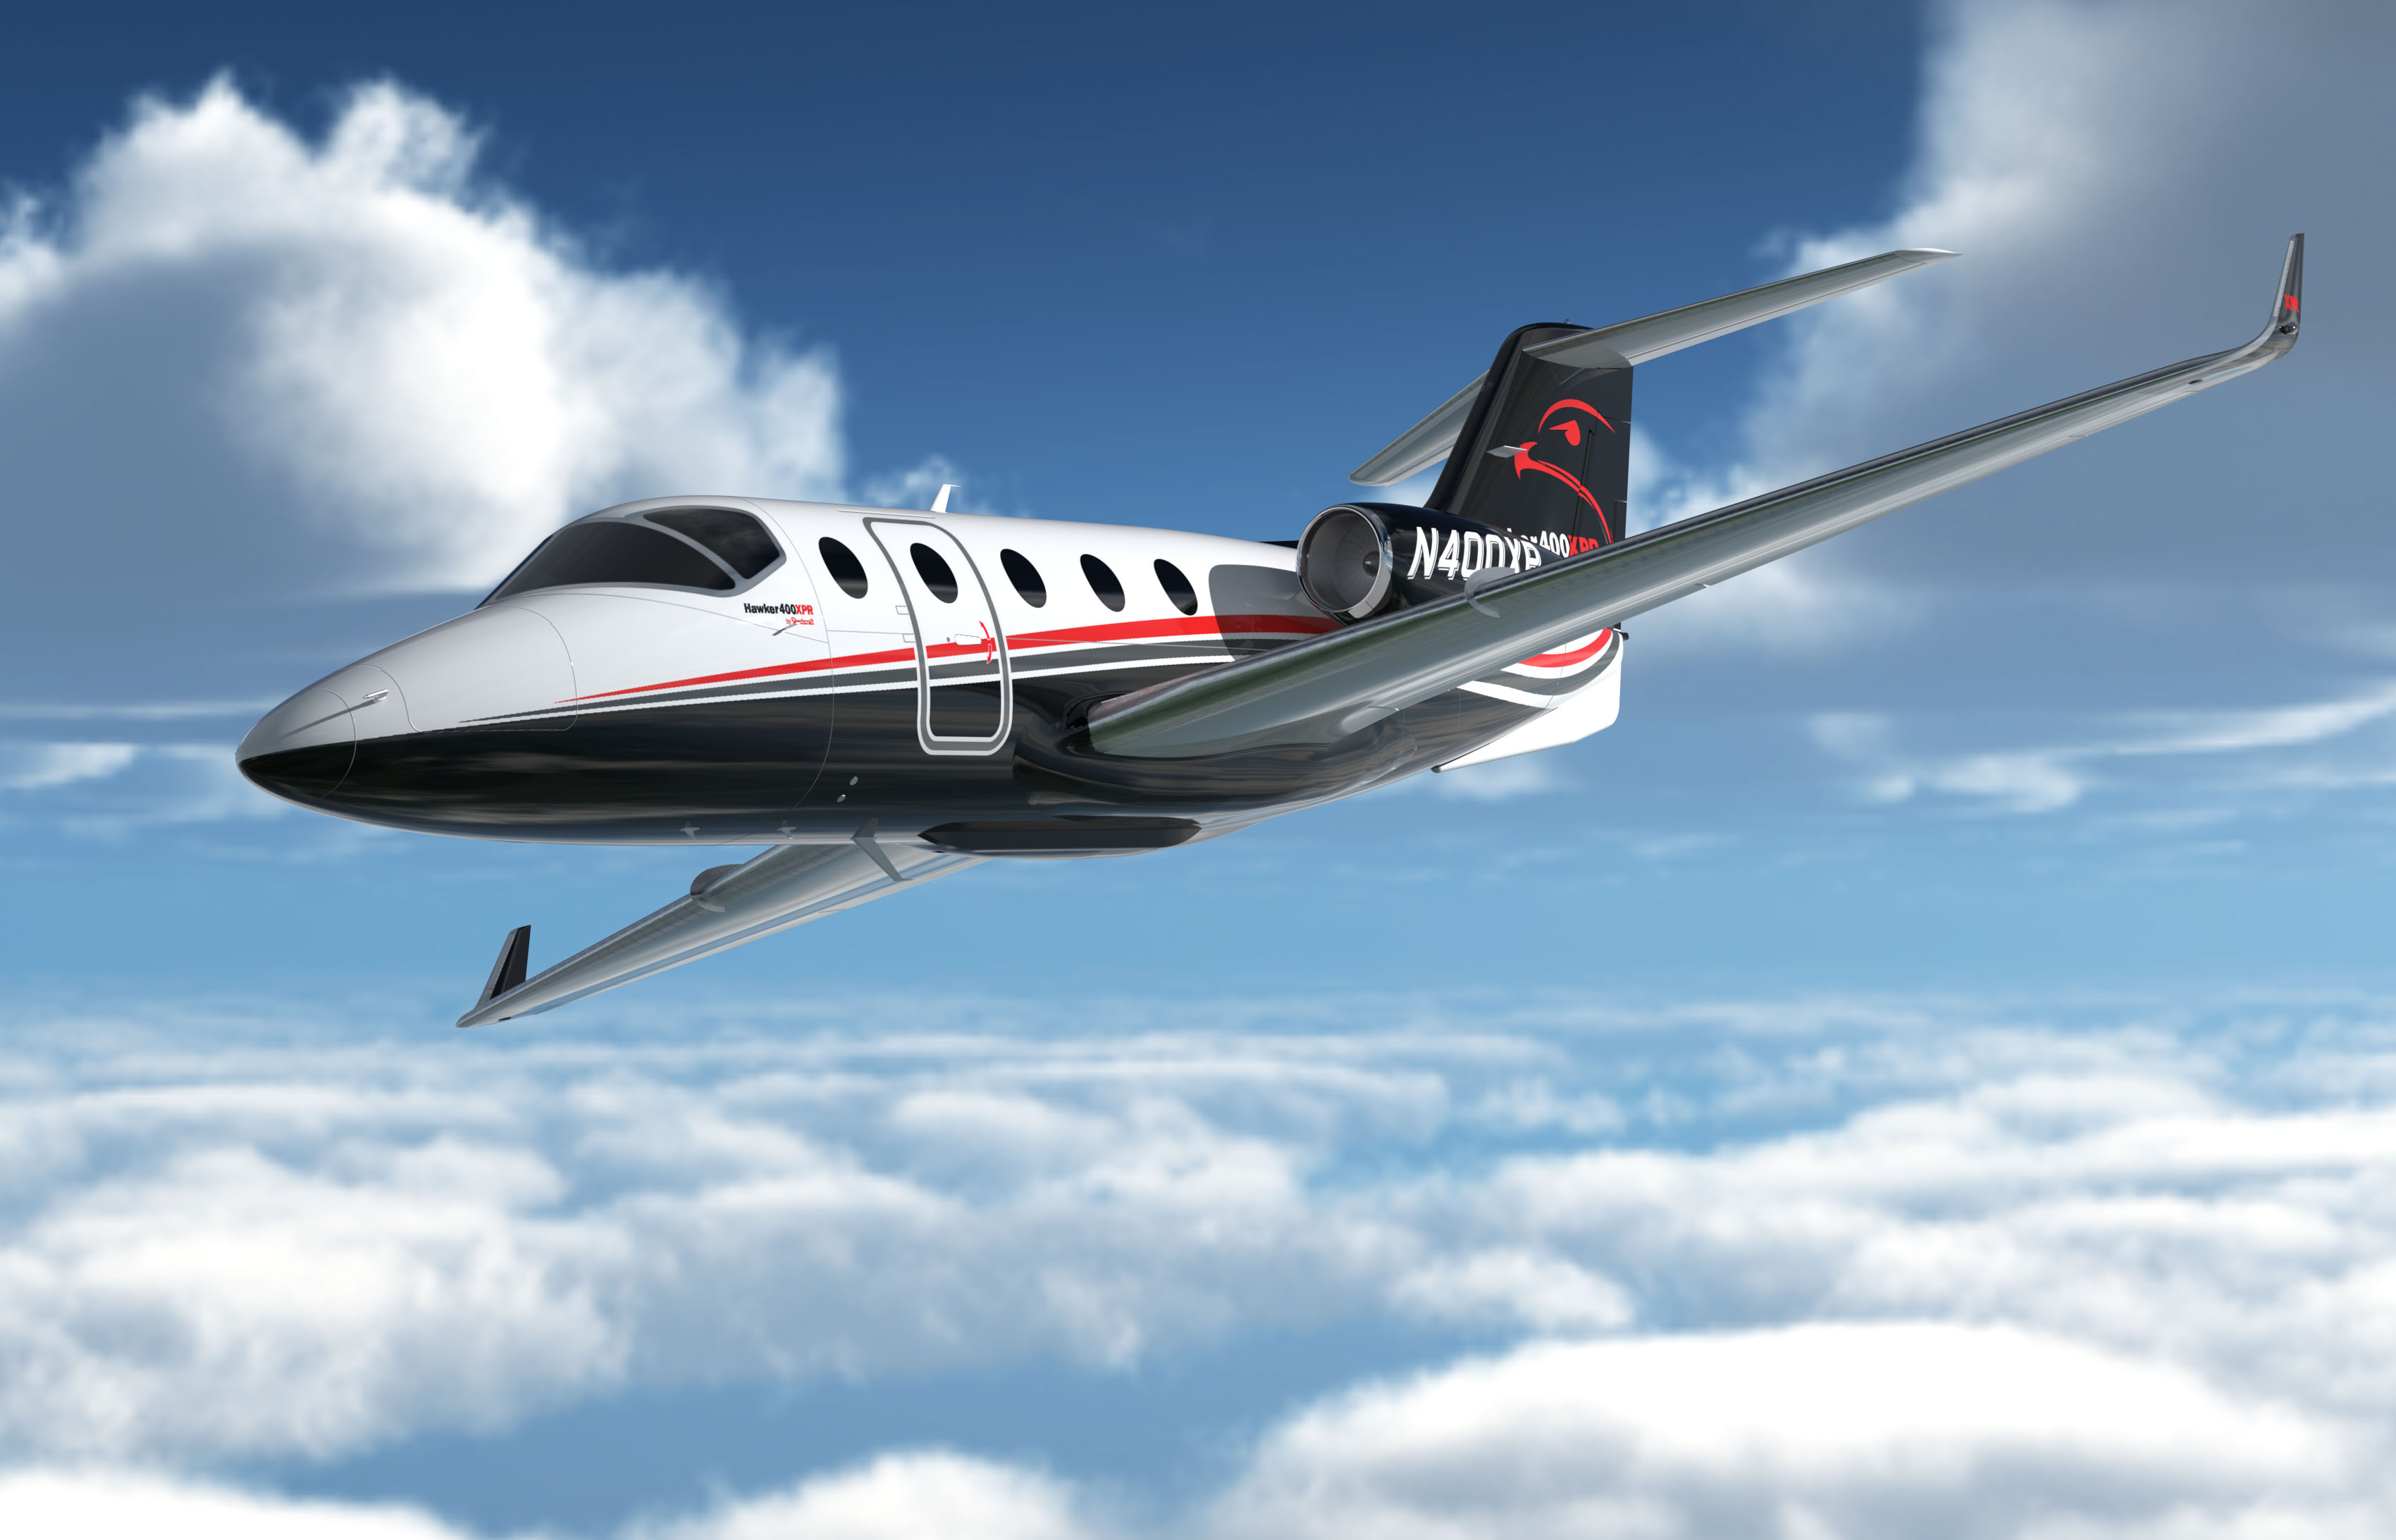 Picture-of-Hawker 400XPR-Aircraft gallery